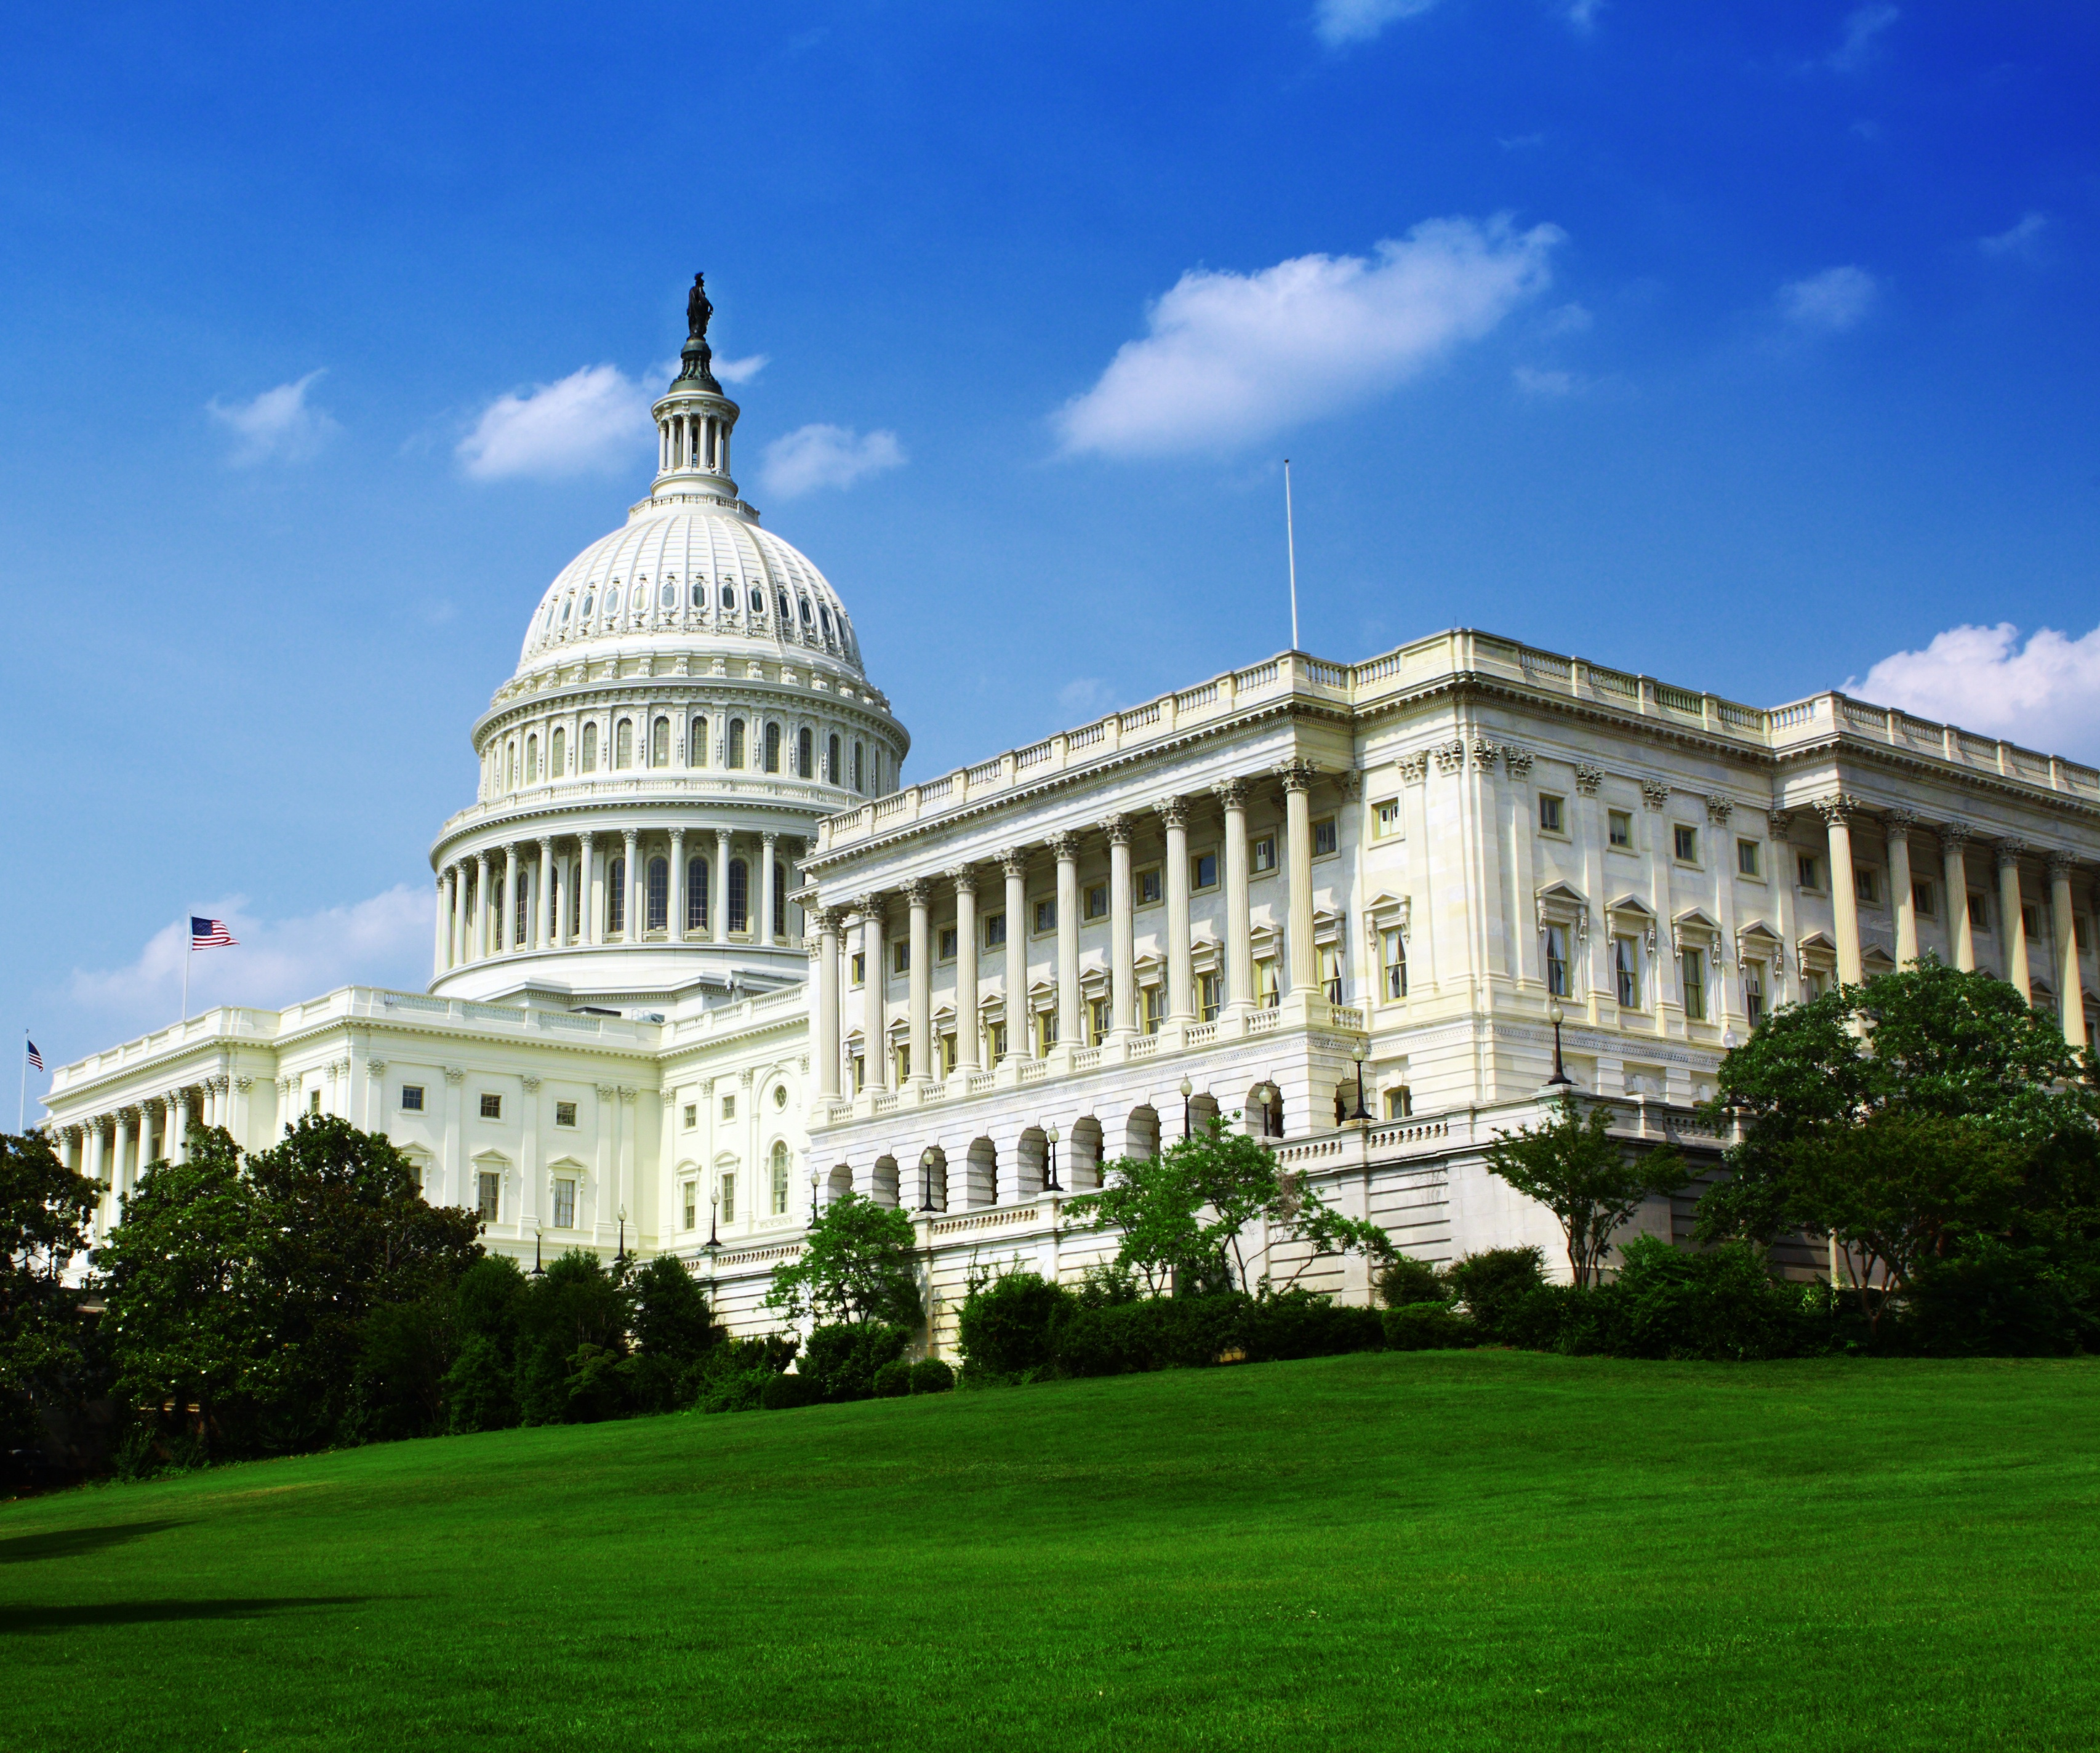 4-Day New York, Philadelphia, Washington DC Deluxe Tour from New York with Airport Transfers